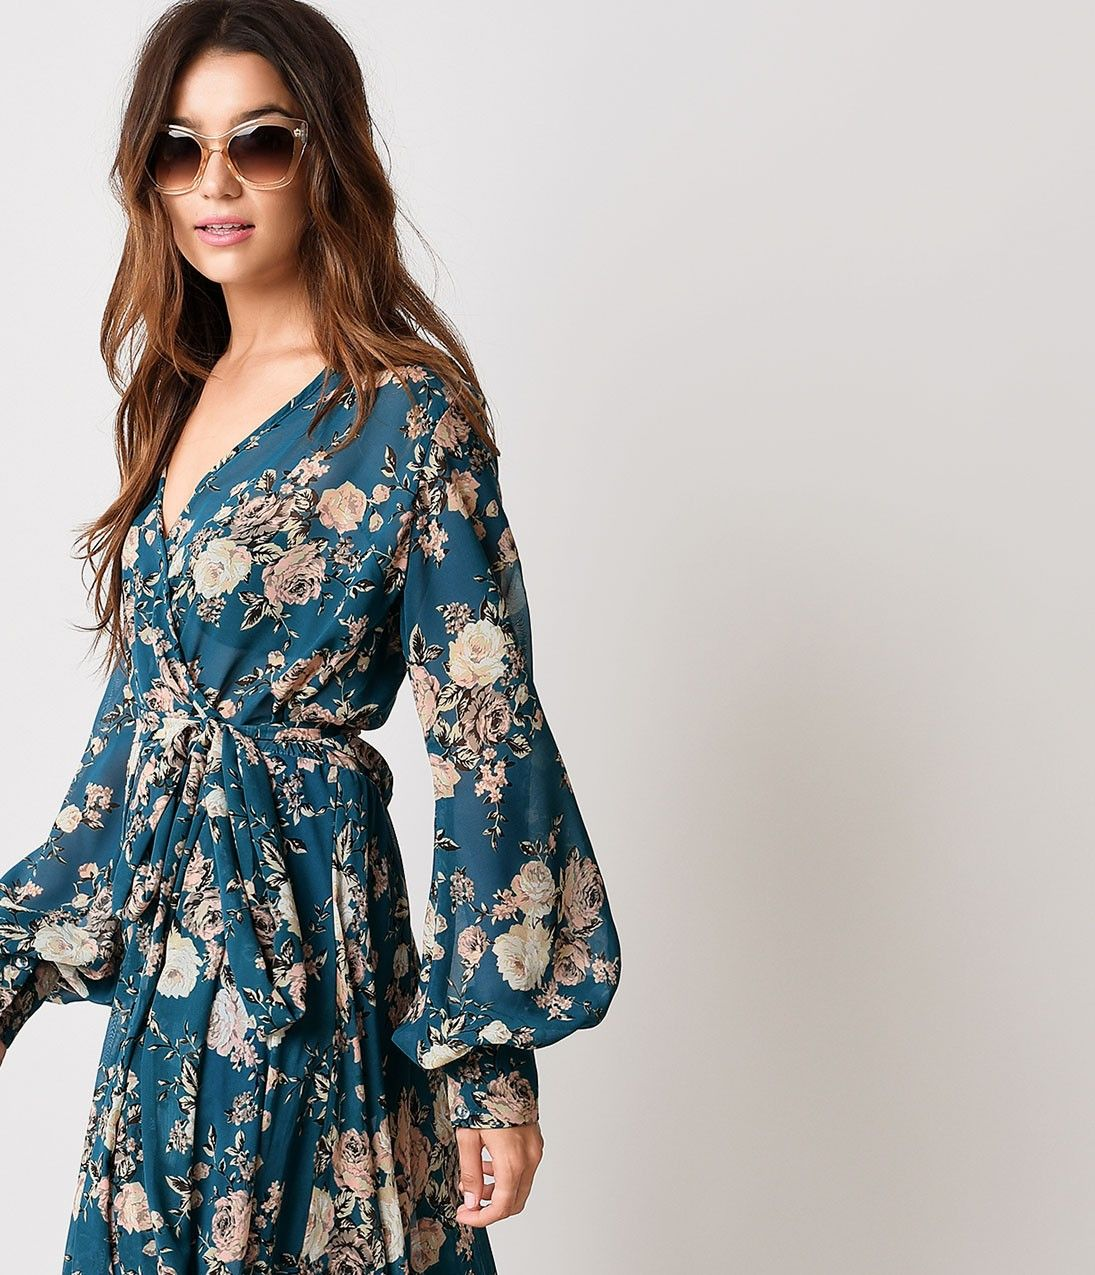 1970s style teal rose floral long sleeve maxi dress the